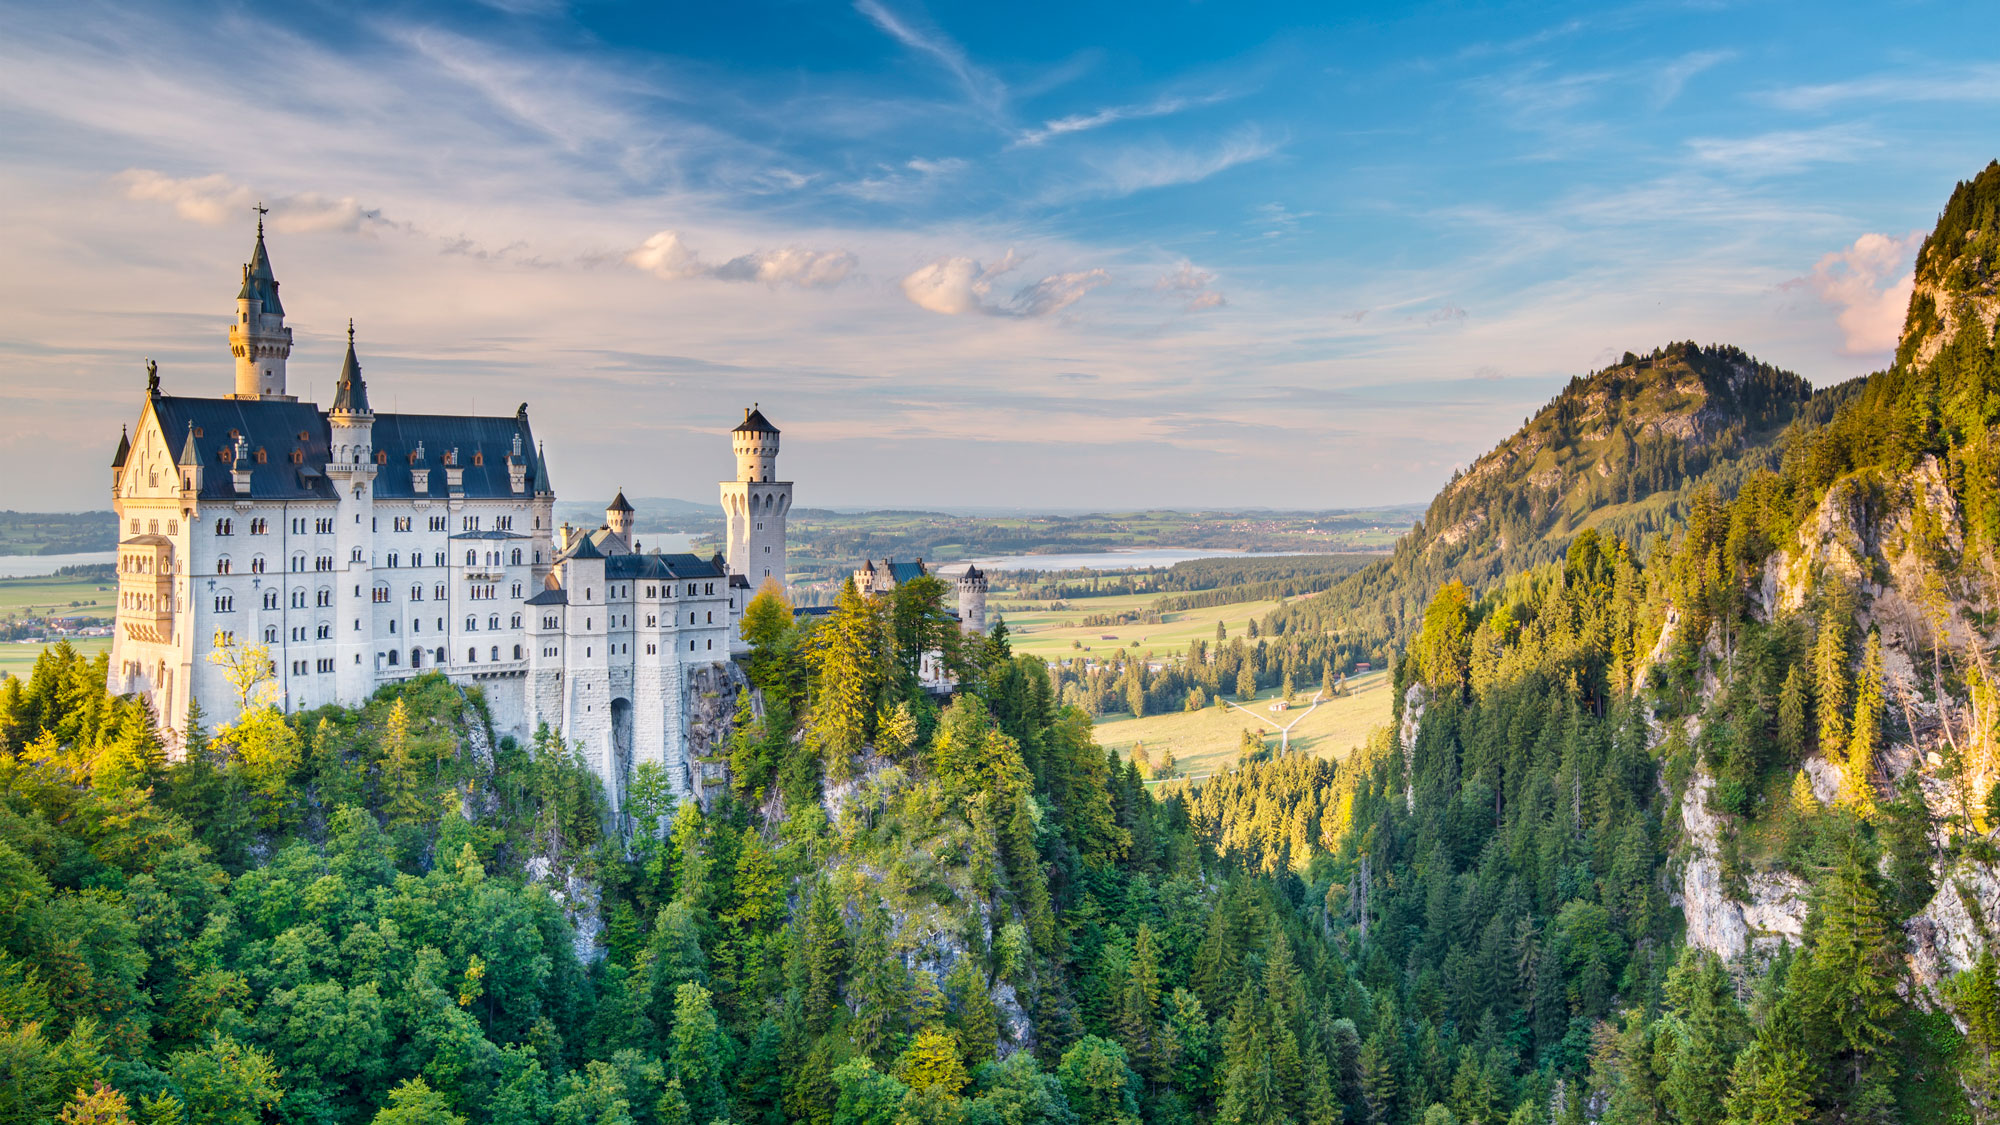 Exterior of the Fussen Neuschwanstein Castle in Germany surrounded by mountains and forests